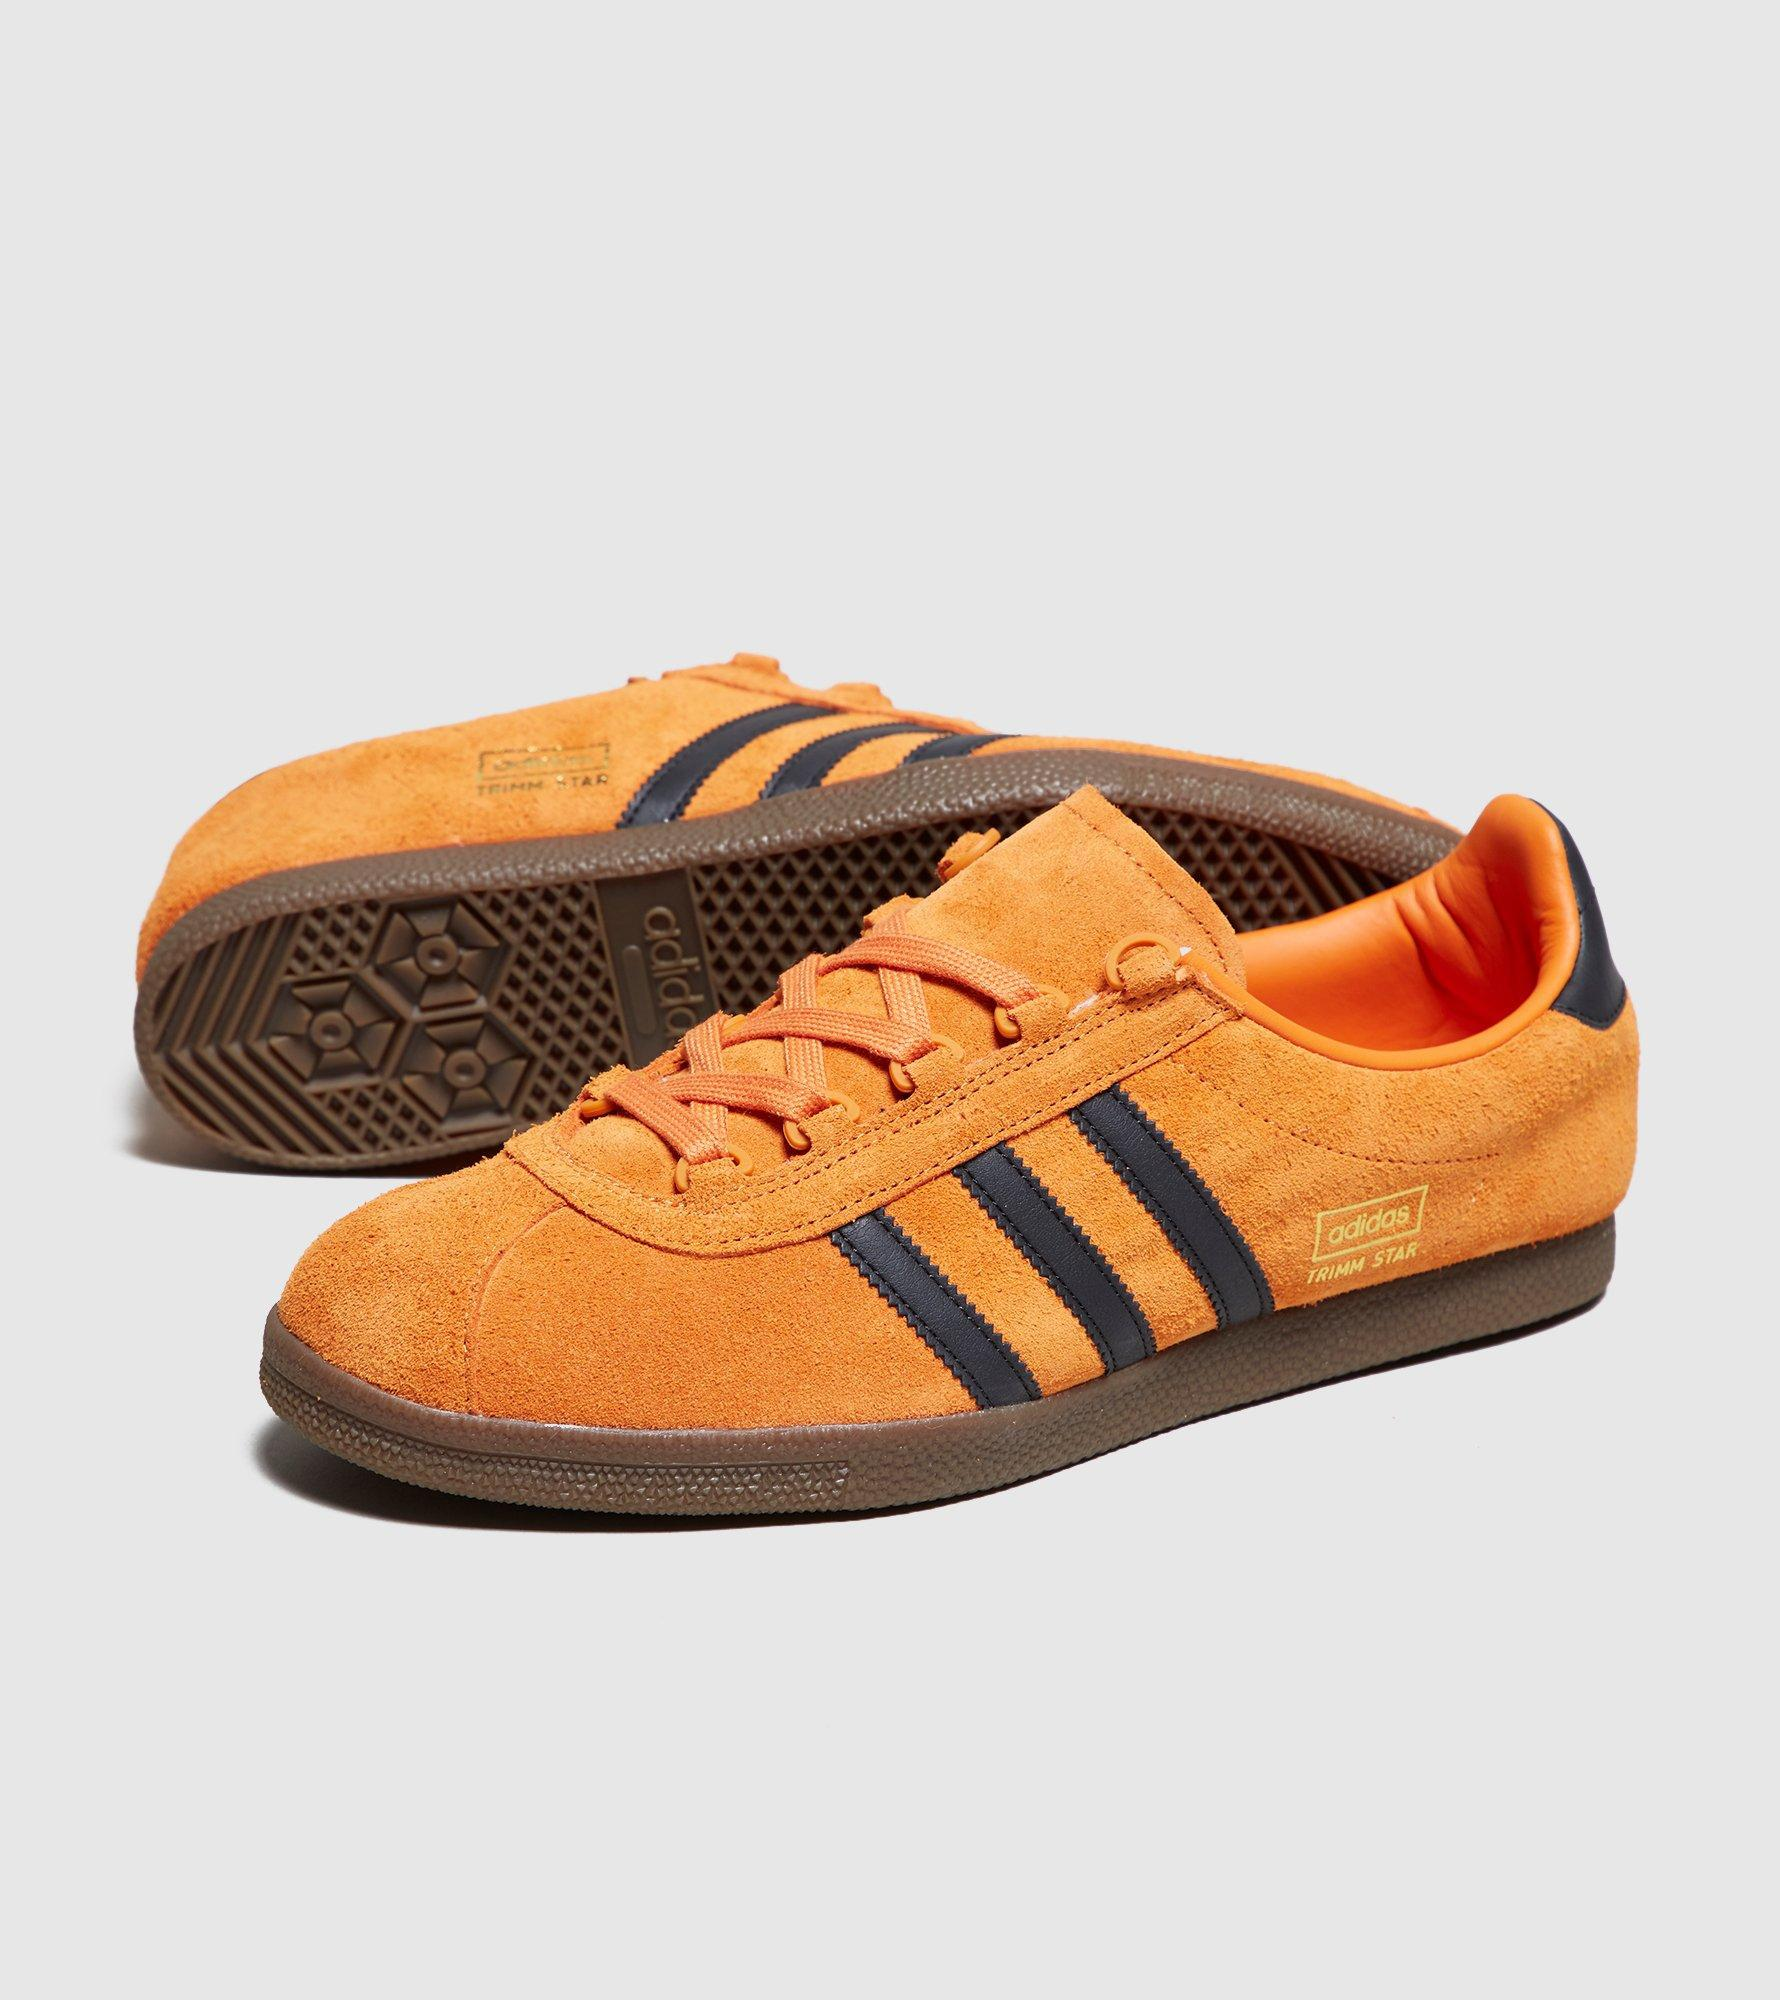 Lyst - adidas Originals Trimm Star - Size  Exclusive in Orange for Men a1eaf1a6a